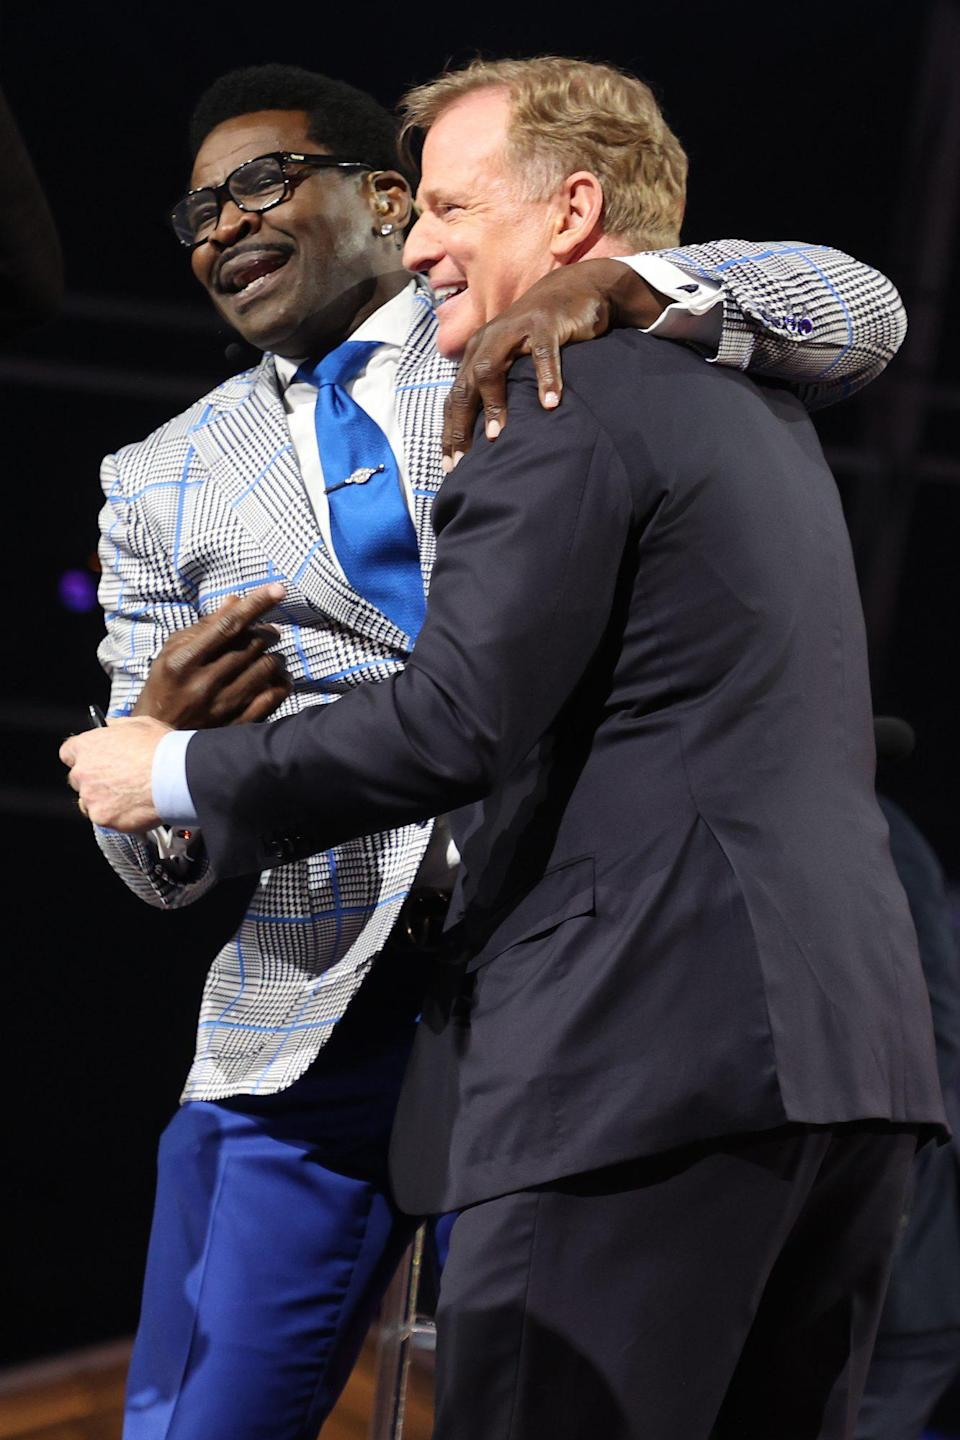 <p>Sports commentator Michael Irvin couldn't help but hug Goodell as he emceed the event.</p>